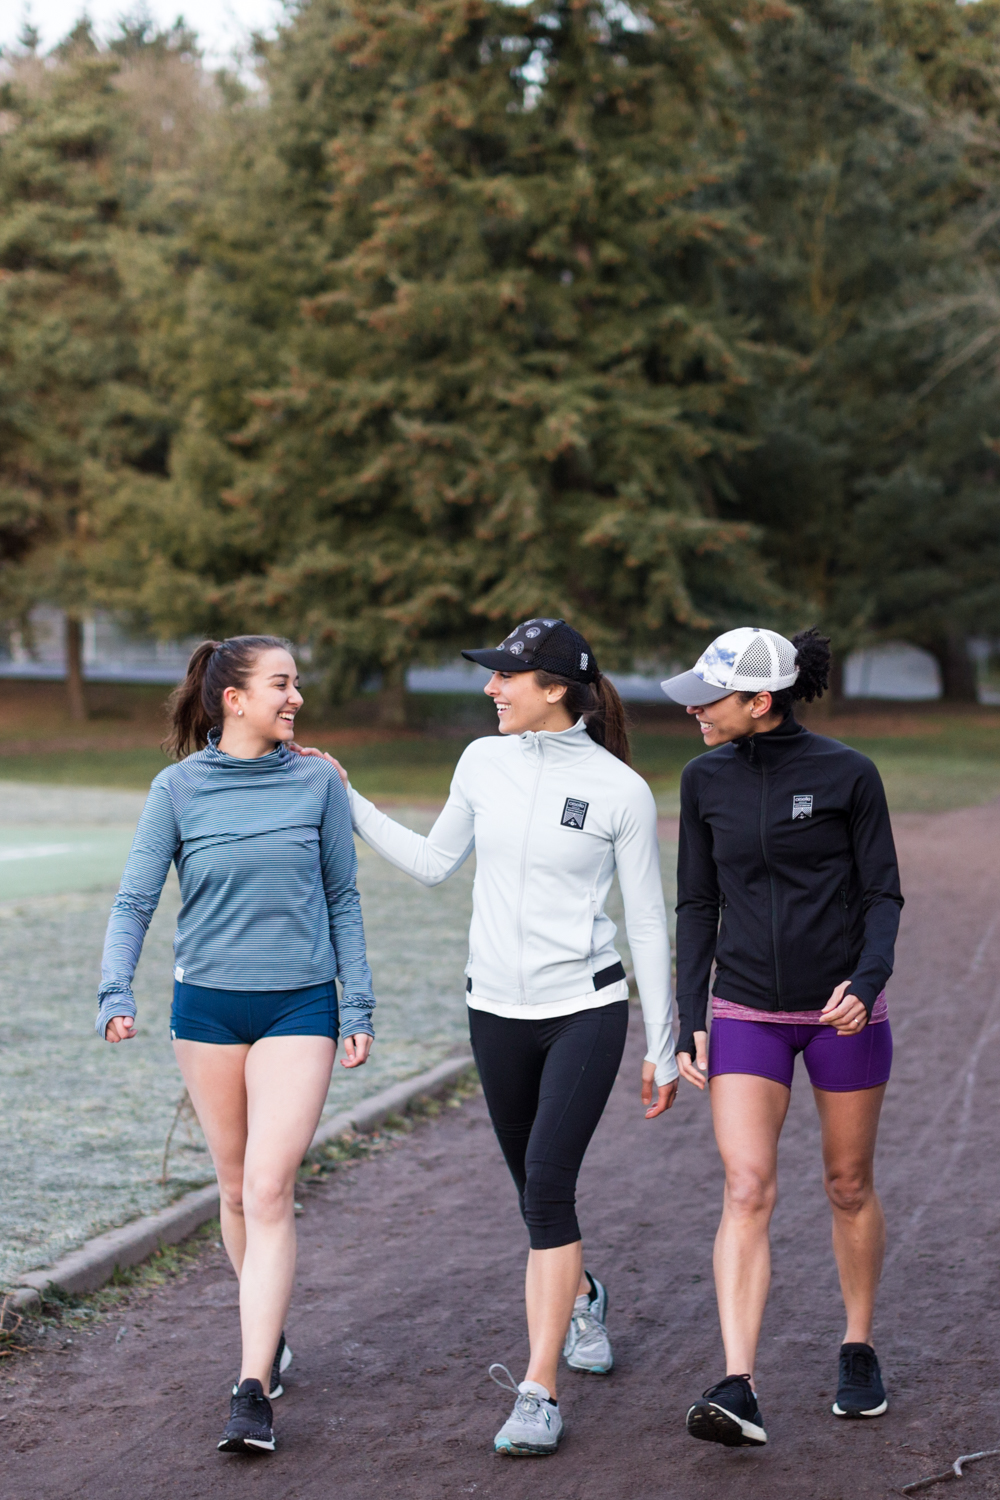 oiselle-track-trio-greenlake-danielle-motif-photography-18.jpg